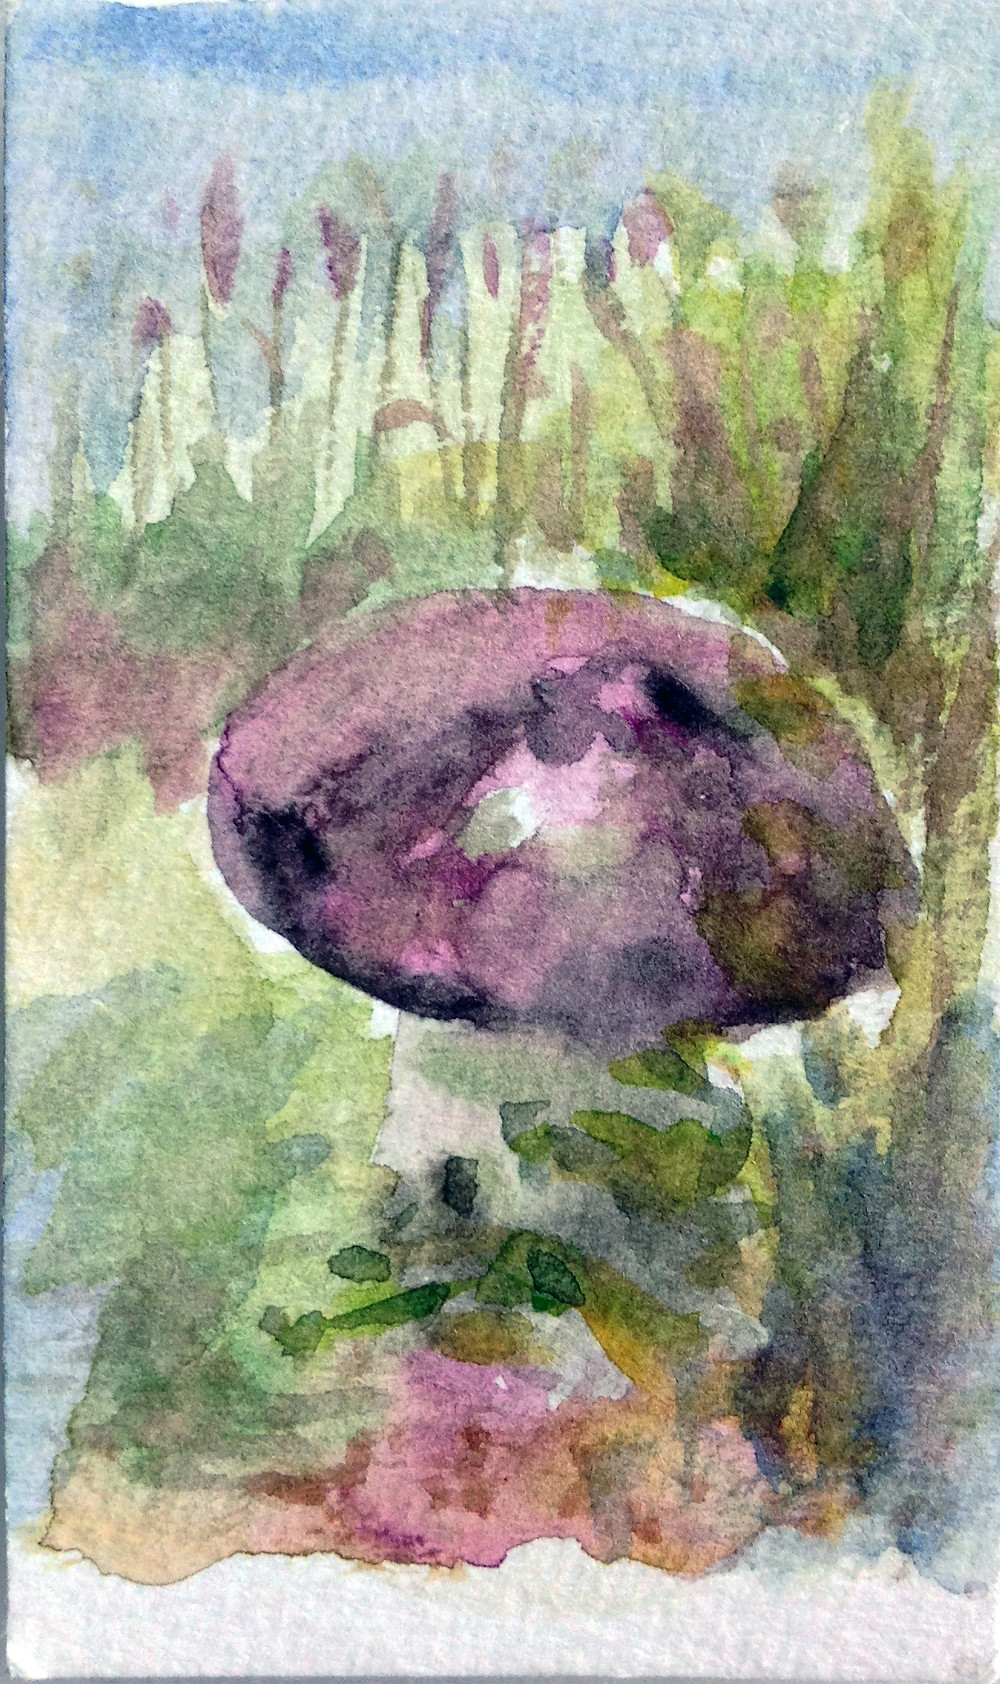 mushroom garden feature mini watercolour painting